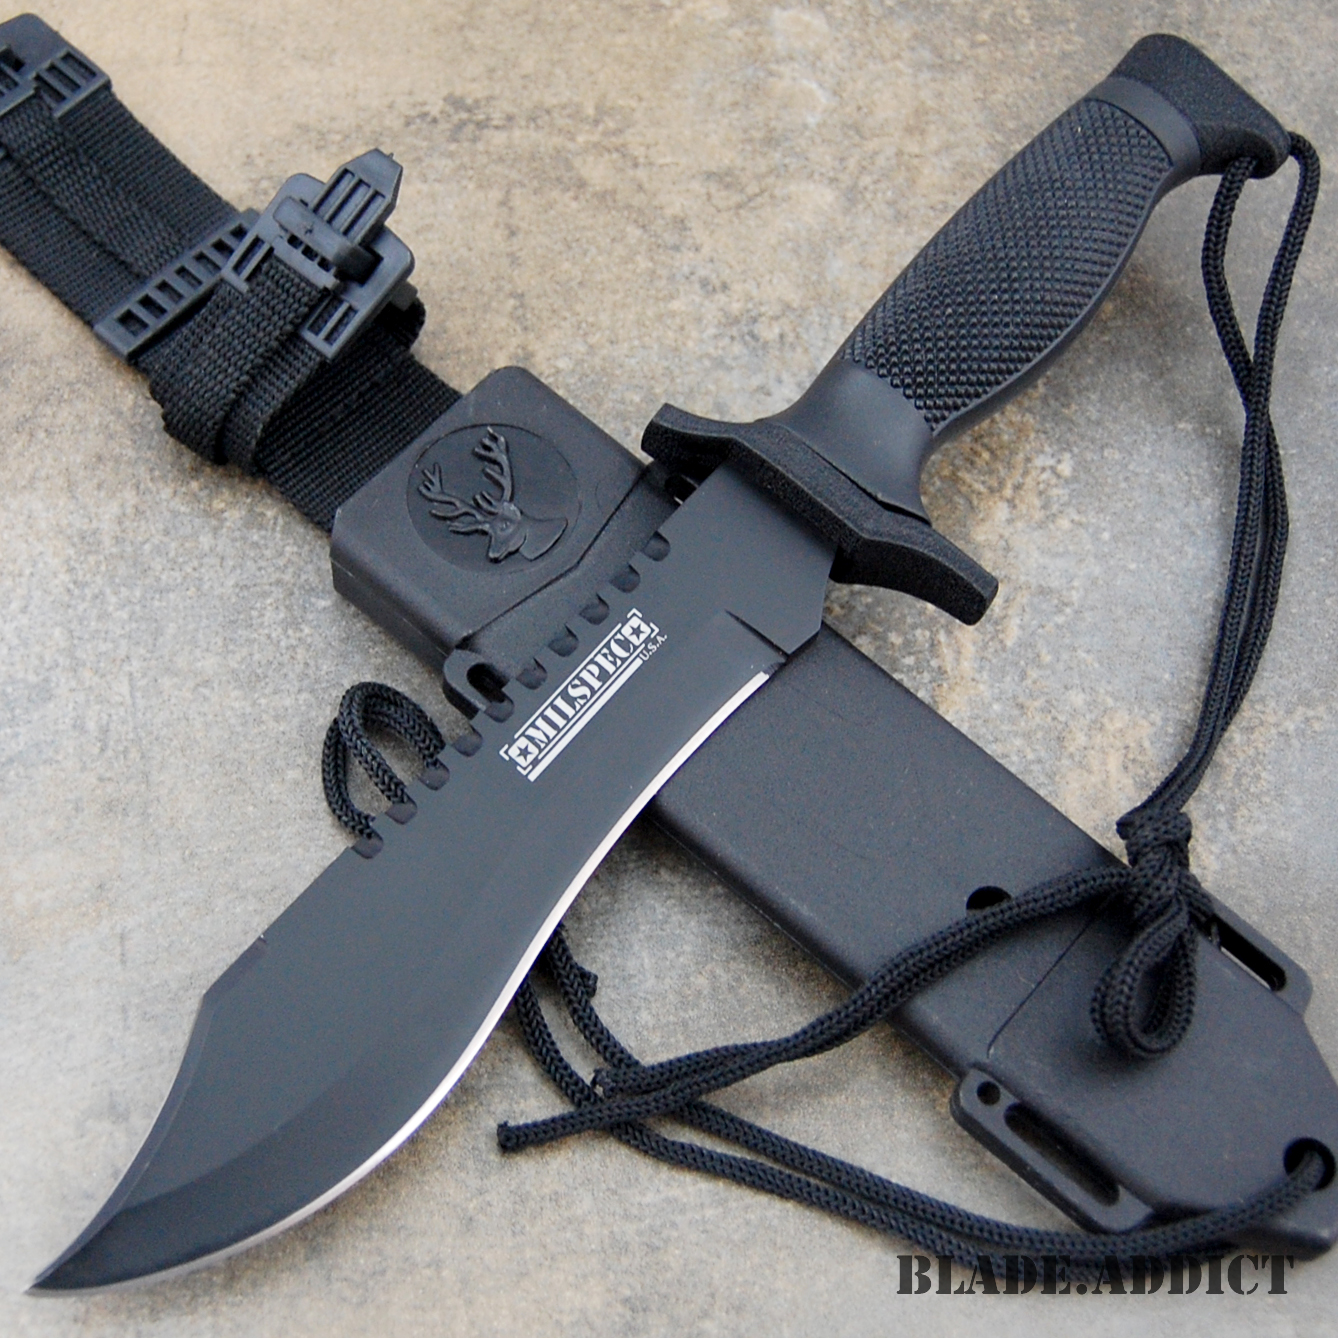 12 Quot Tactical Bowie Survival Hunting Knife W Sheath